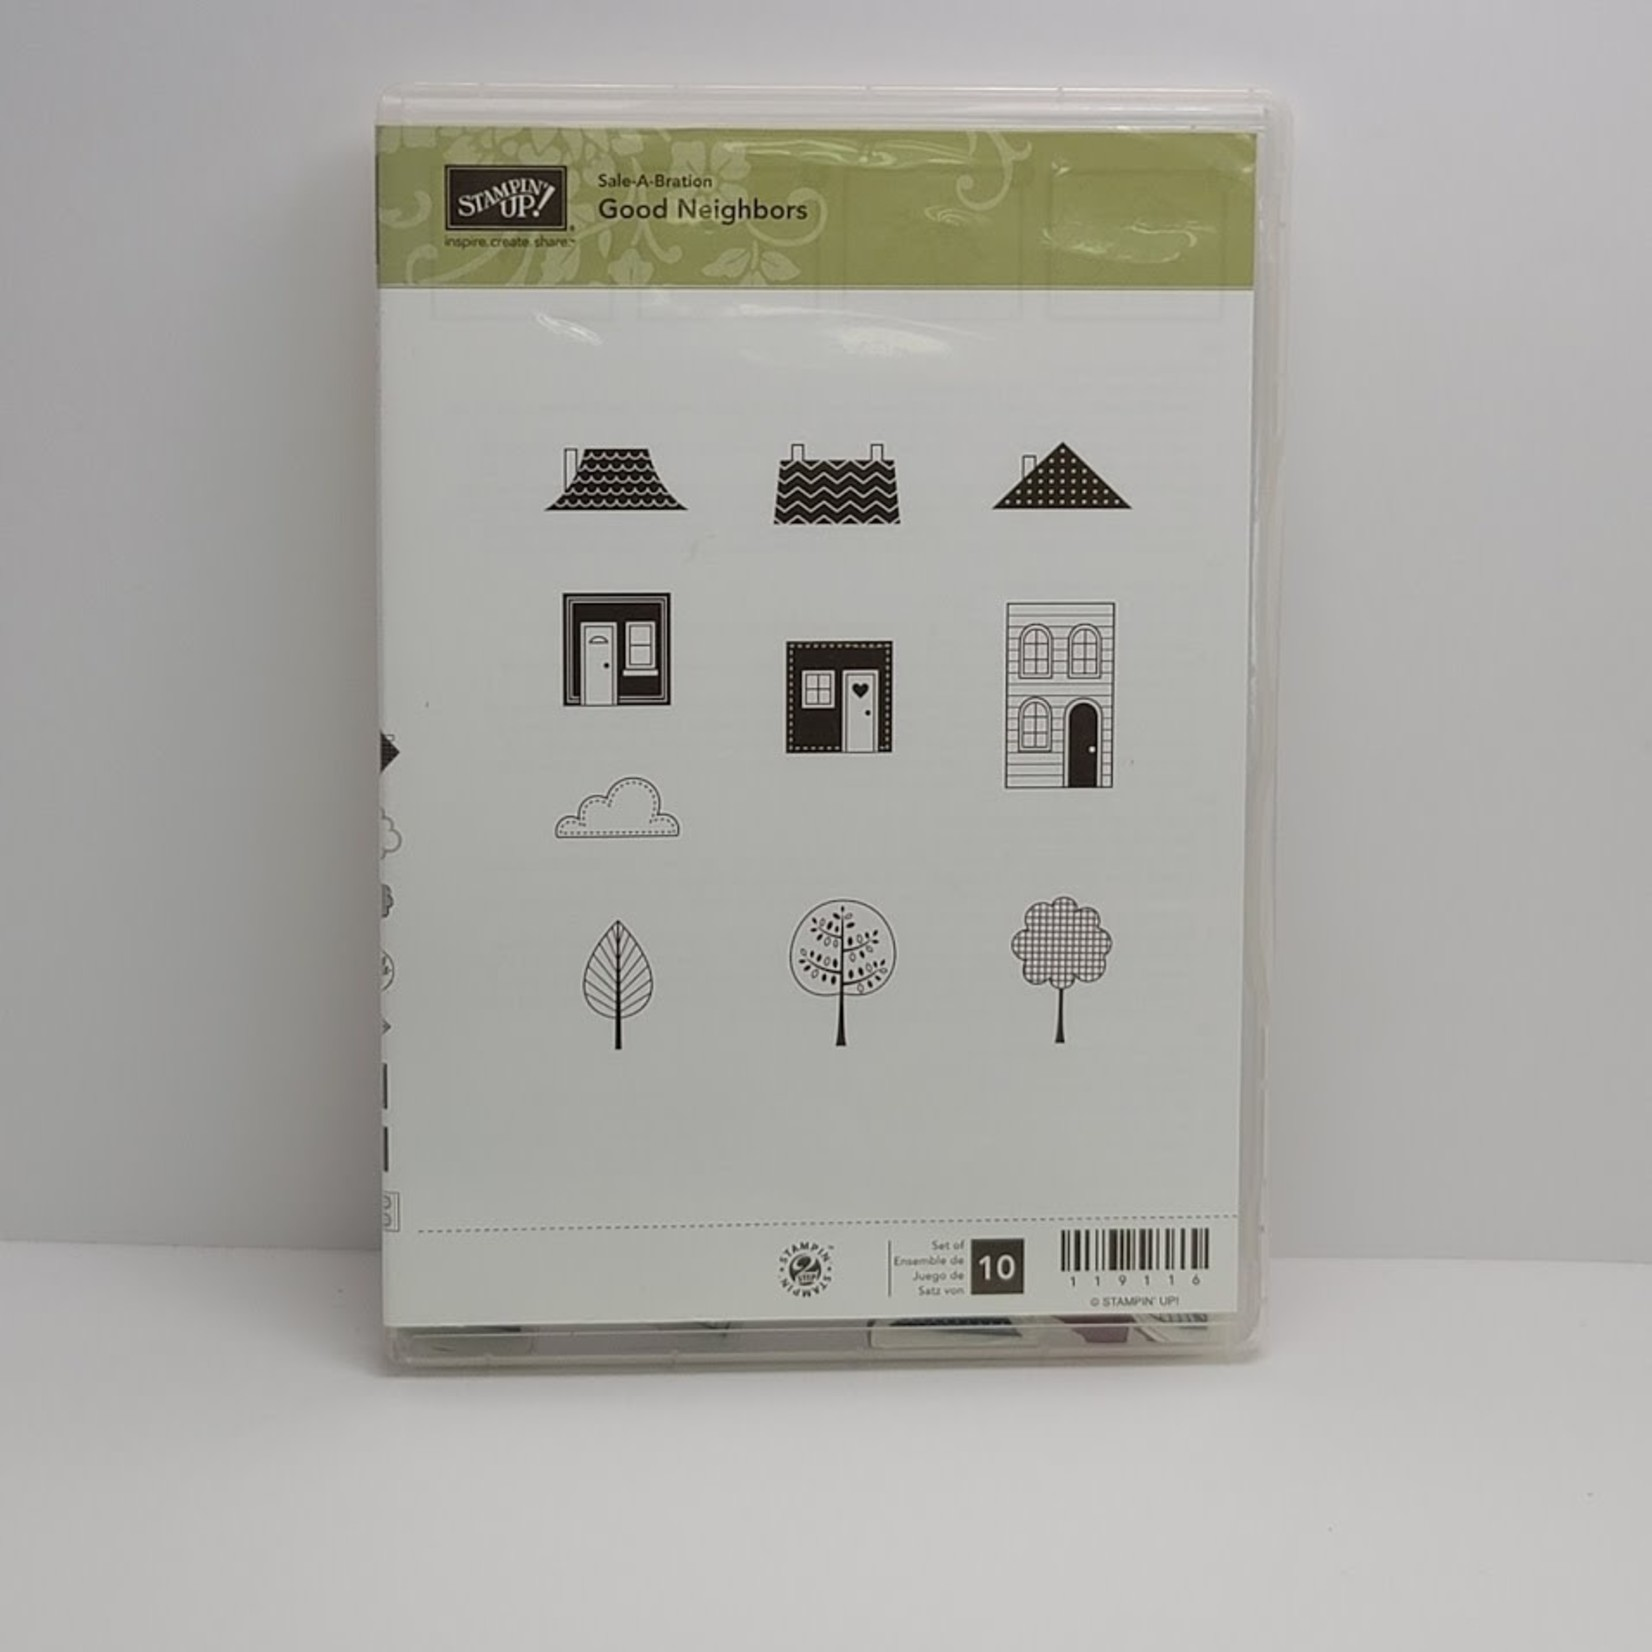 Stampin' Up Stampin' up - Cling Stamps - Good Neighbors